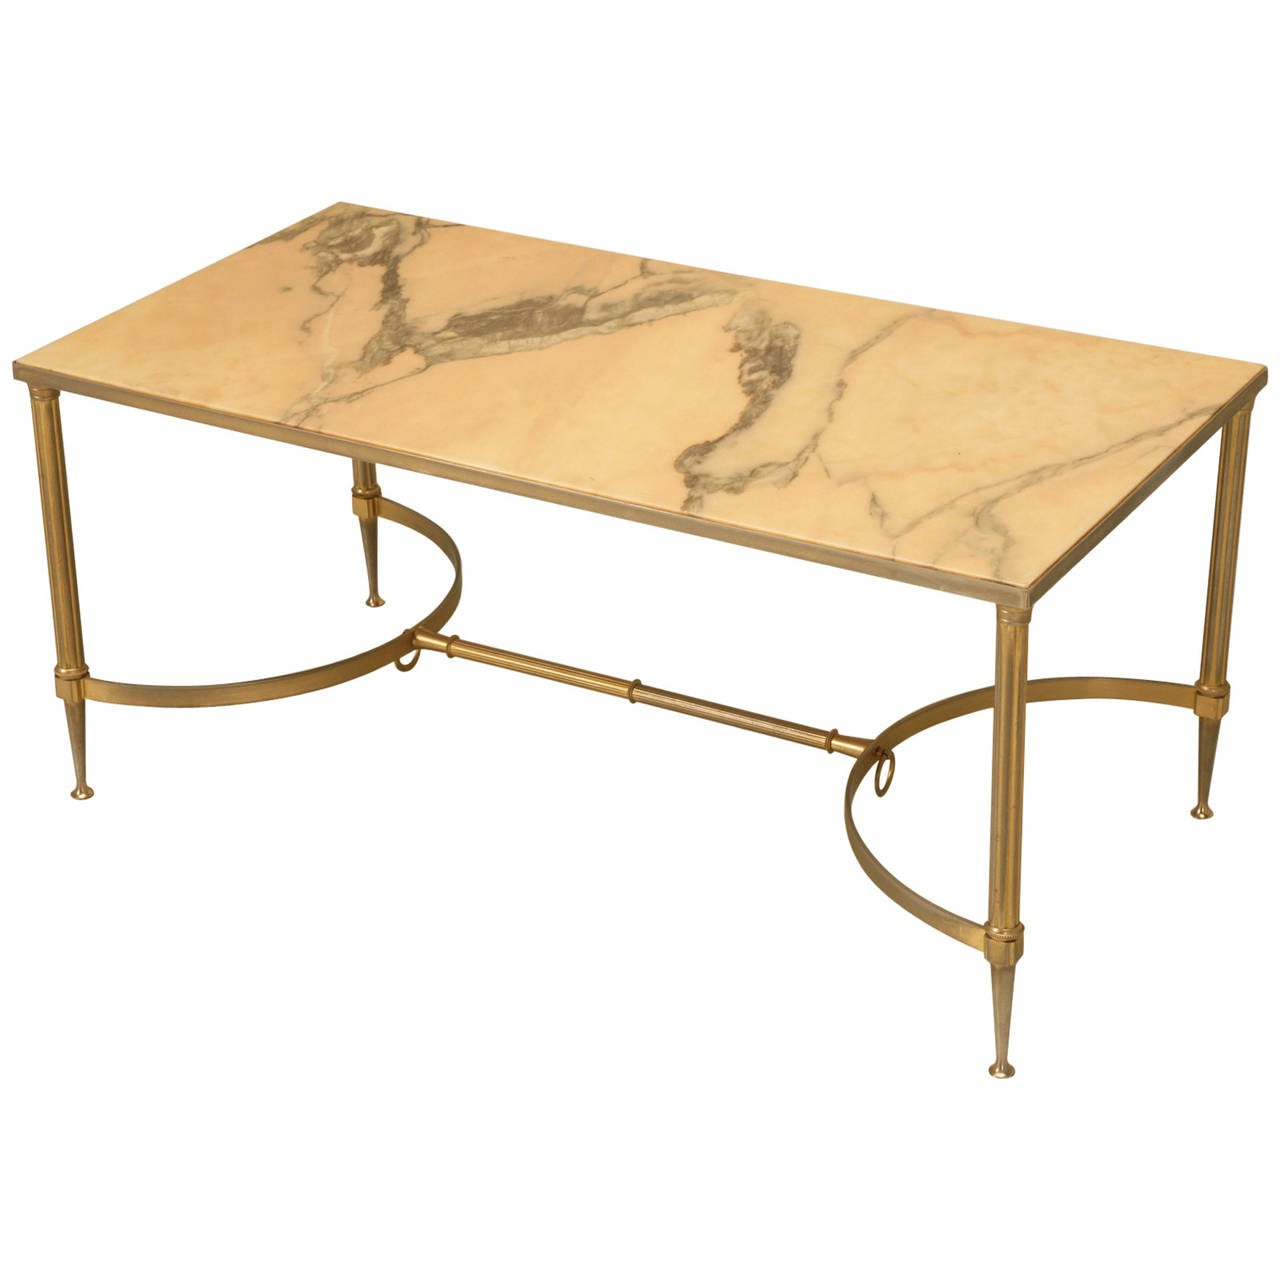 Mid Century Modern Marble Top Coffee Table: Mid-Century Modern Marble And Brass Coffee Table At 1stdibs